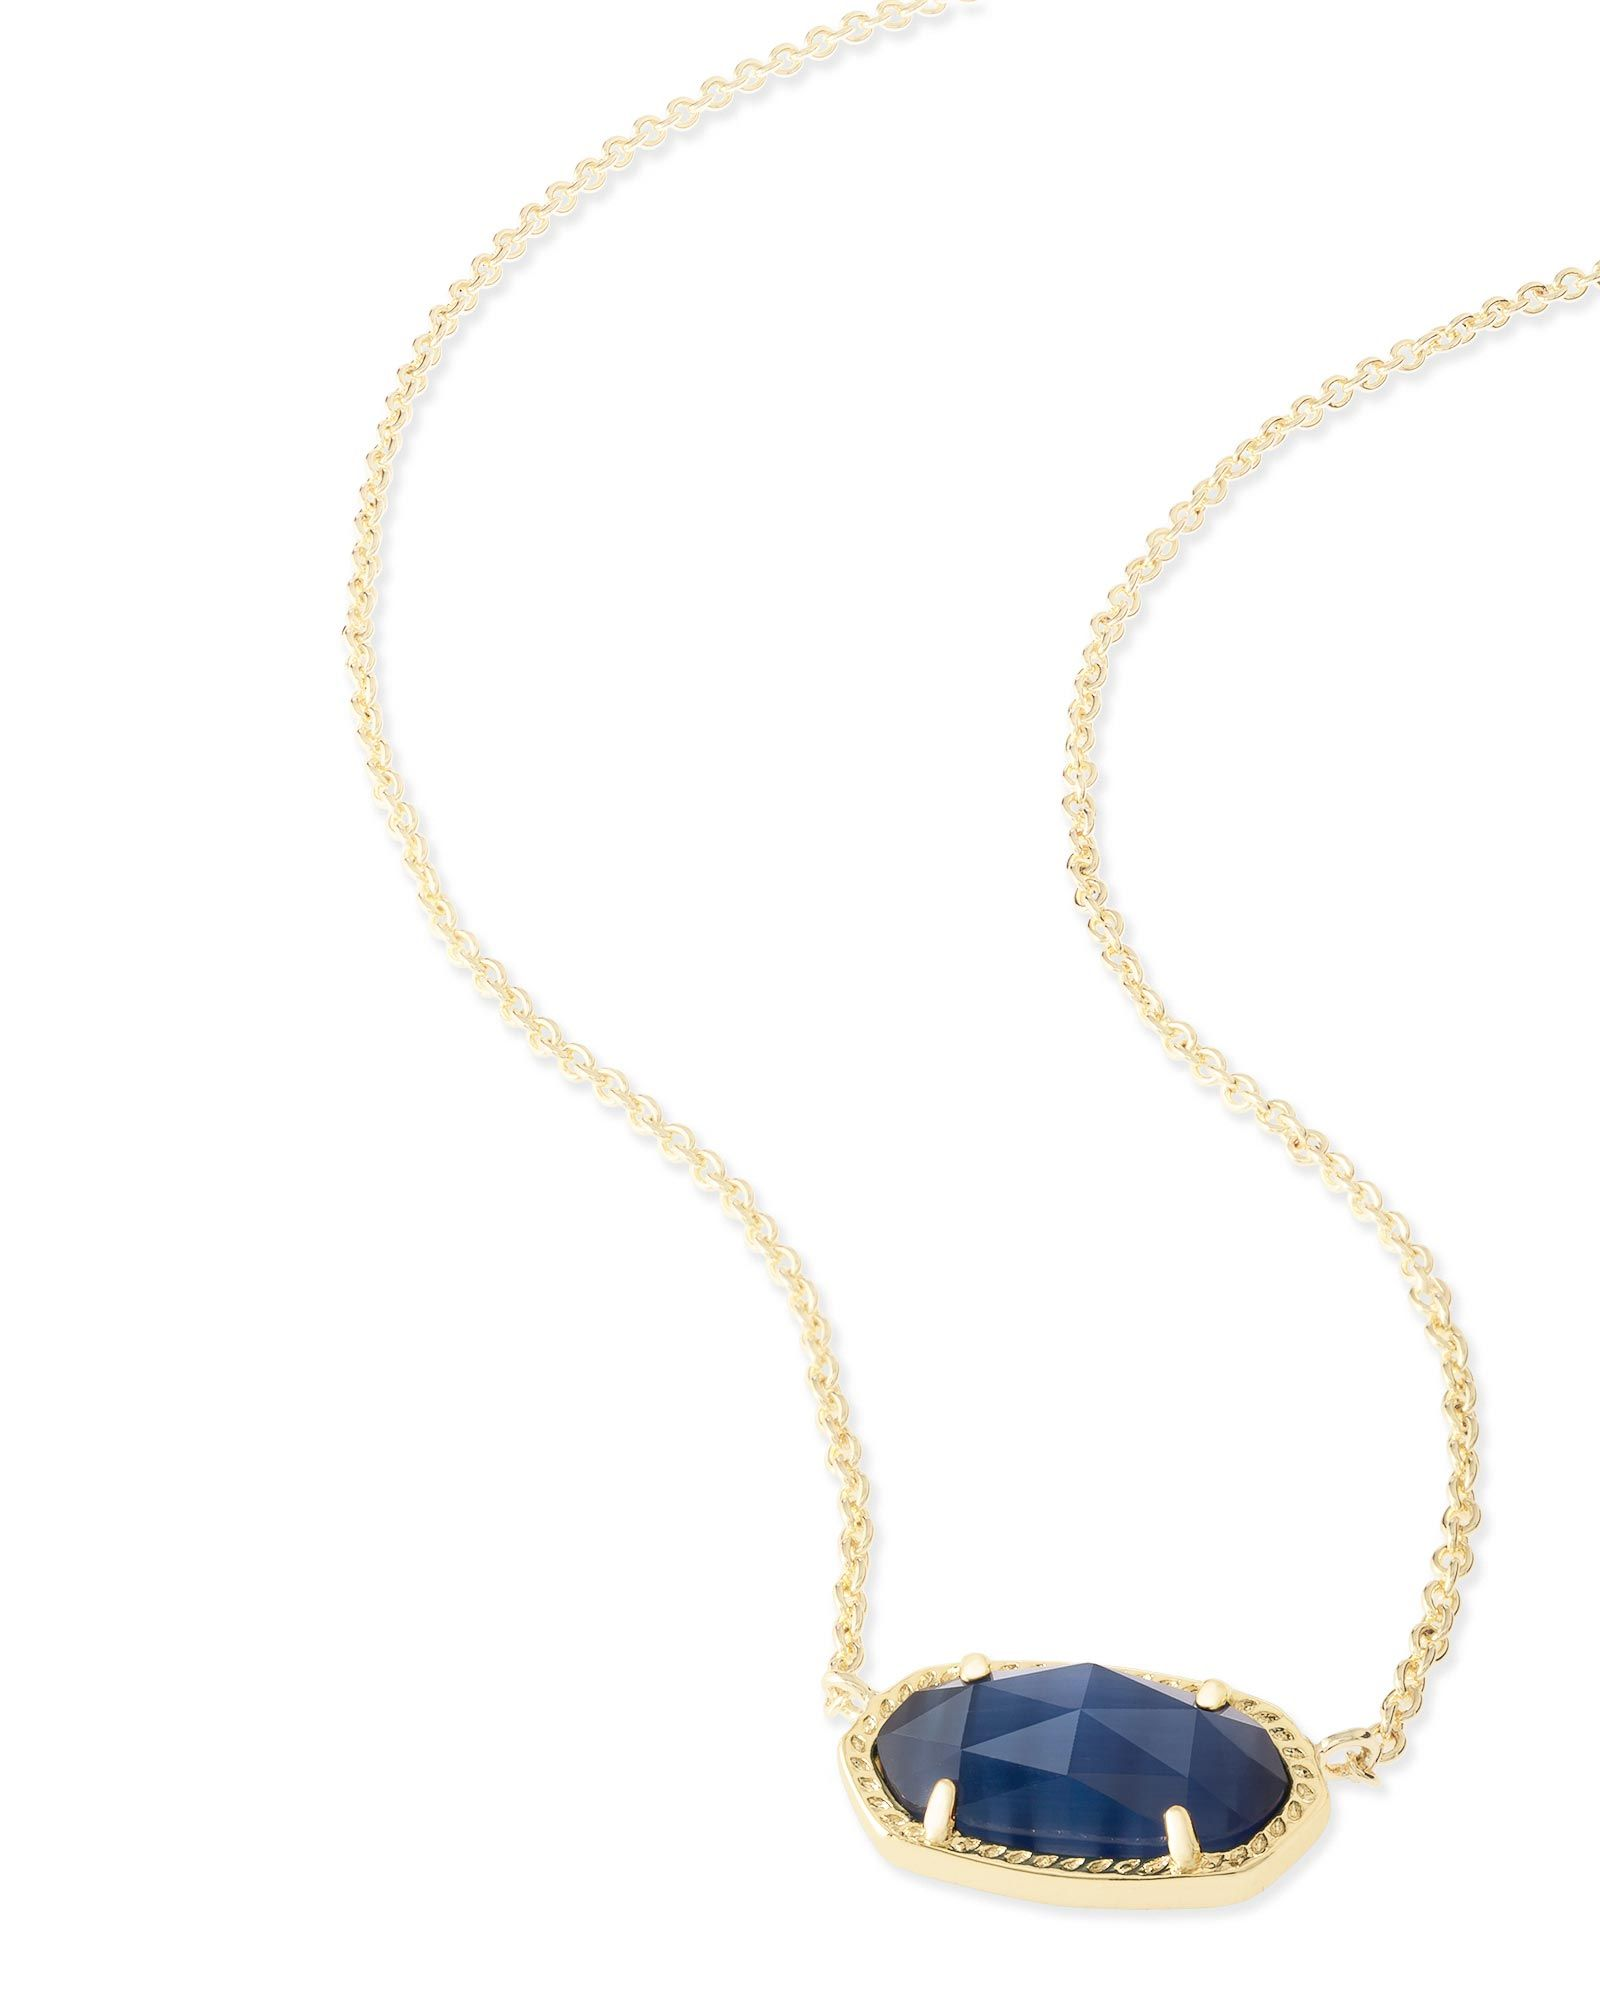 Shop gold pendant necklaces at kendra scott with a dainty navy blue